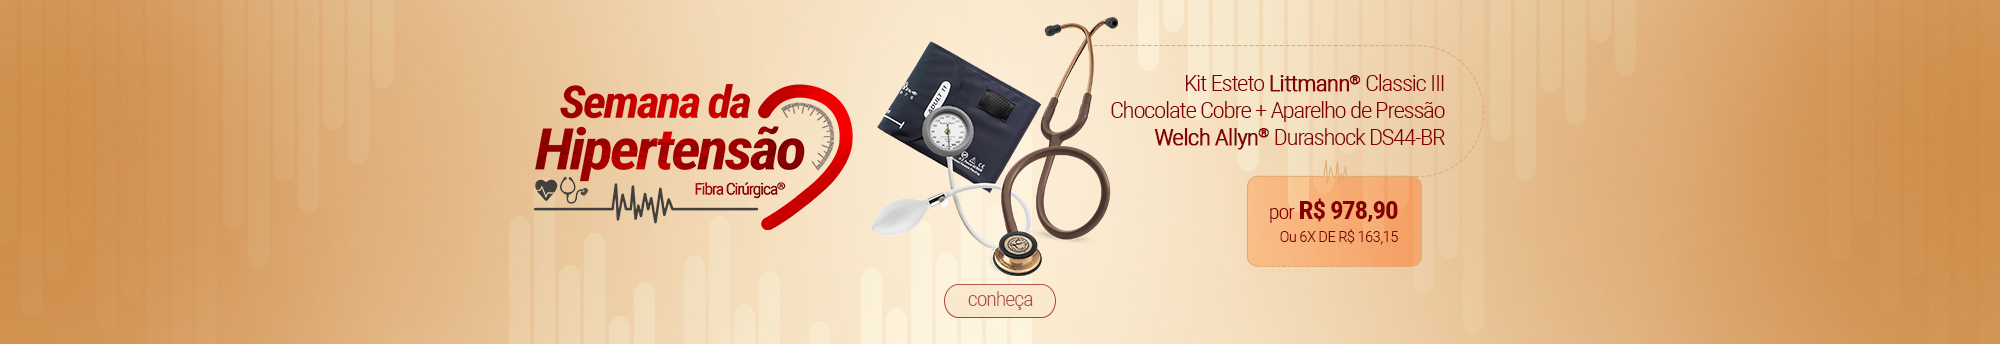 Littmann Welch Allyn